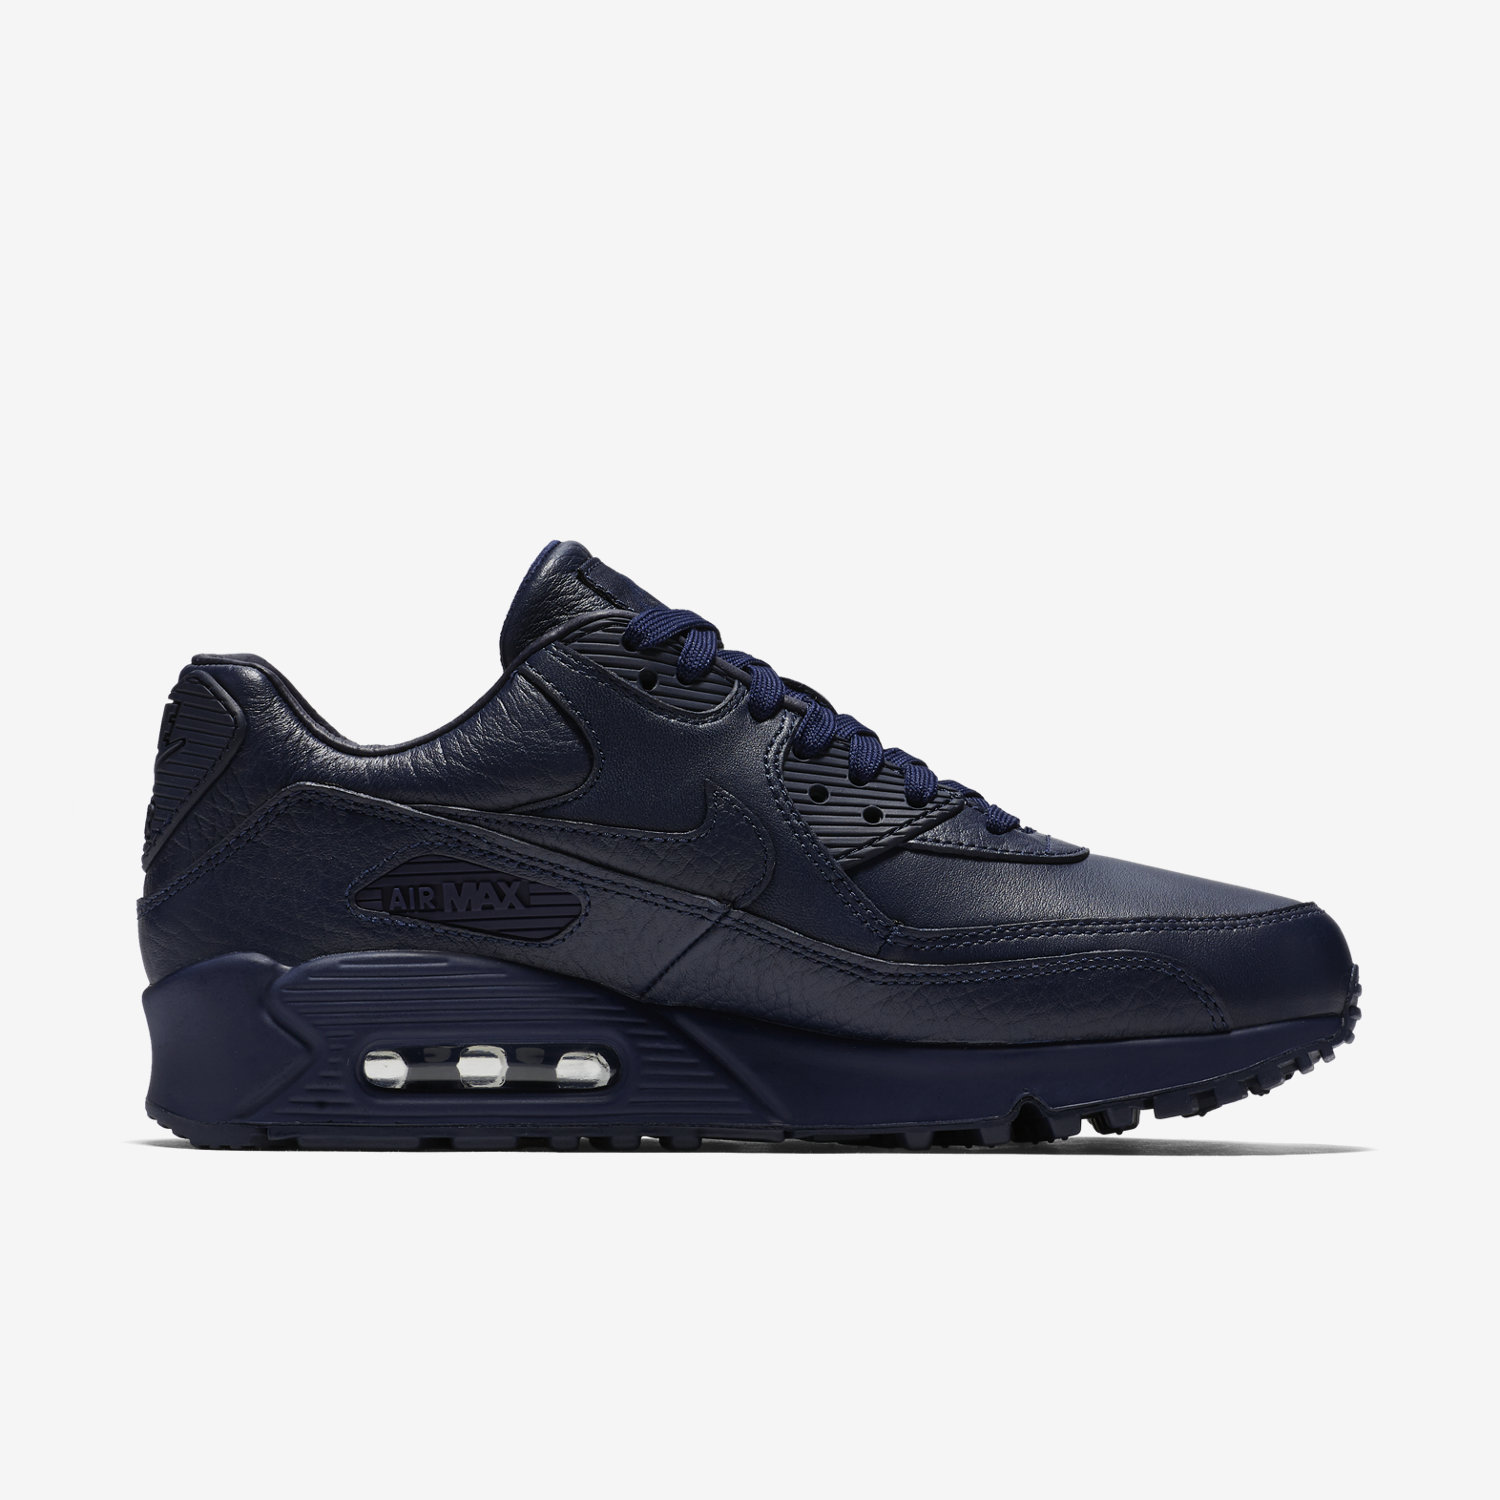 Cheap Nike Air Max 90 Sneaker Boot Winetr Outdoors Men's